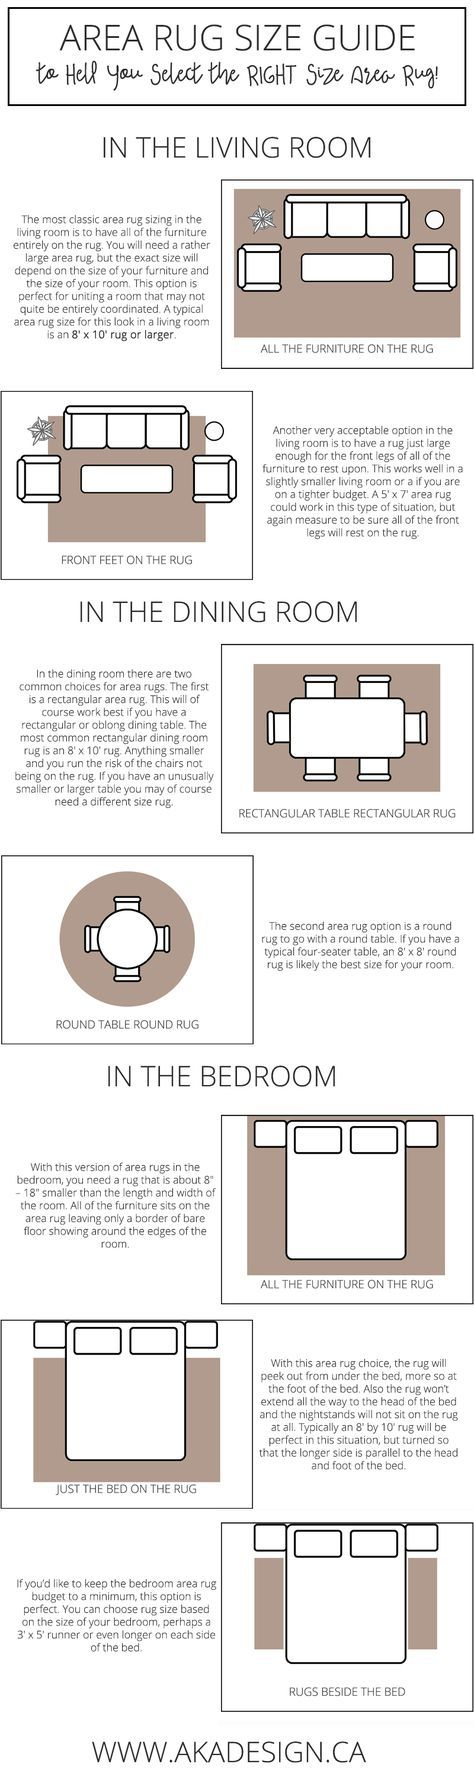 25 best ideas about rug size guide on pinterest rug placement - Dining Room Rug Size